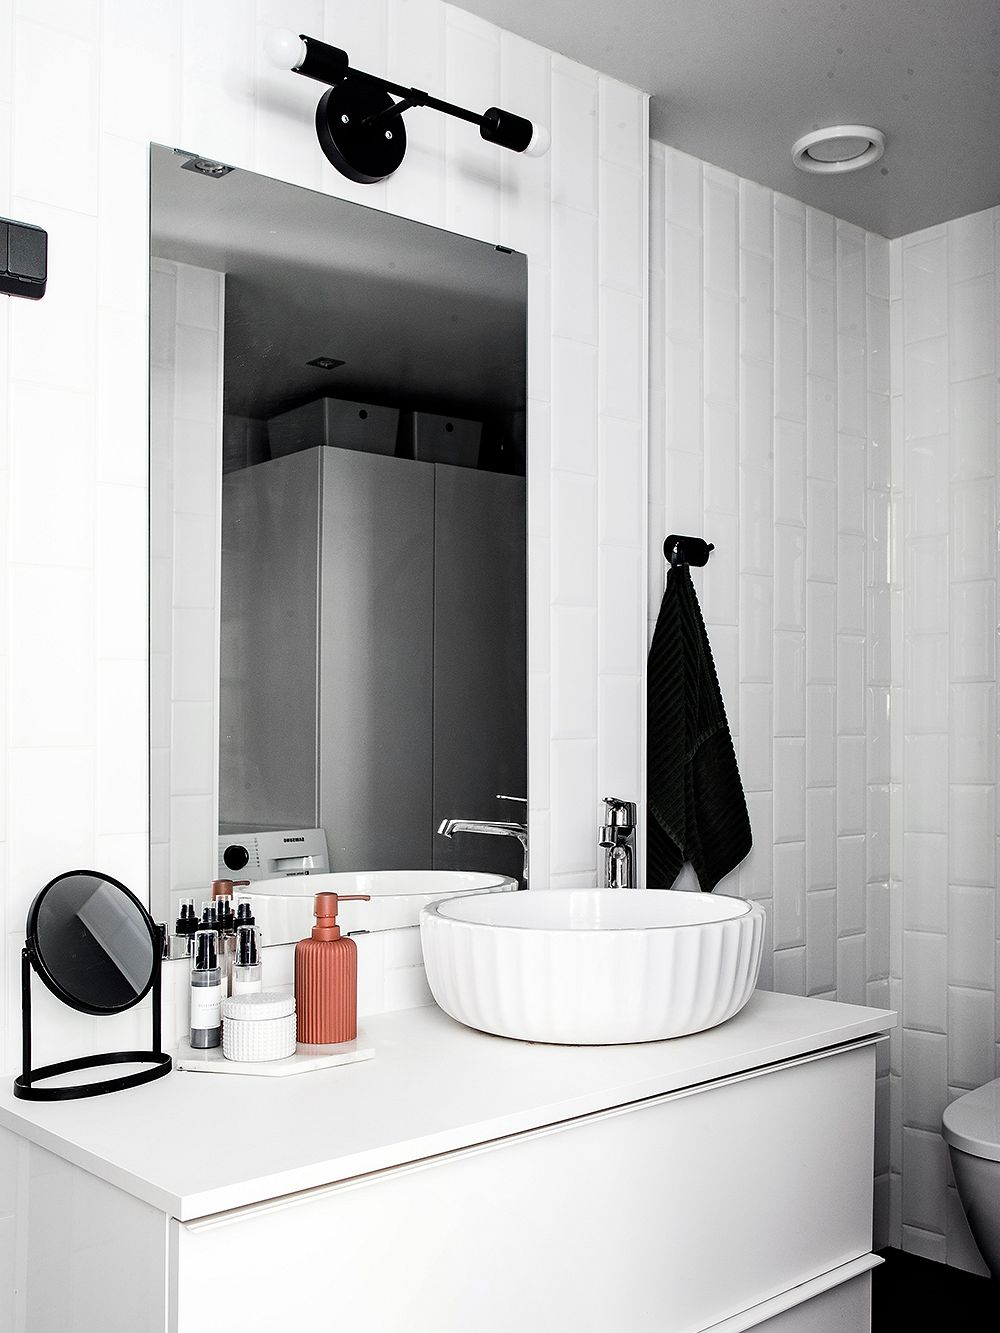 Bathroom – Loft living in an old fire station